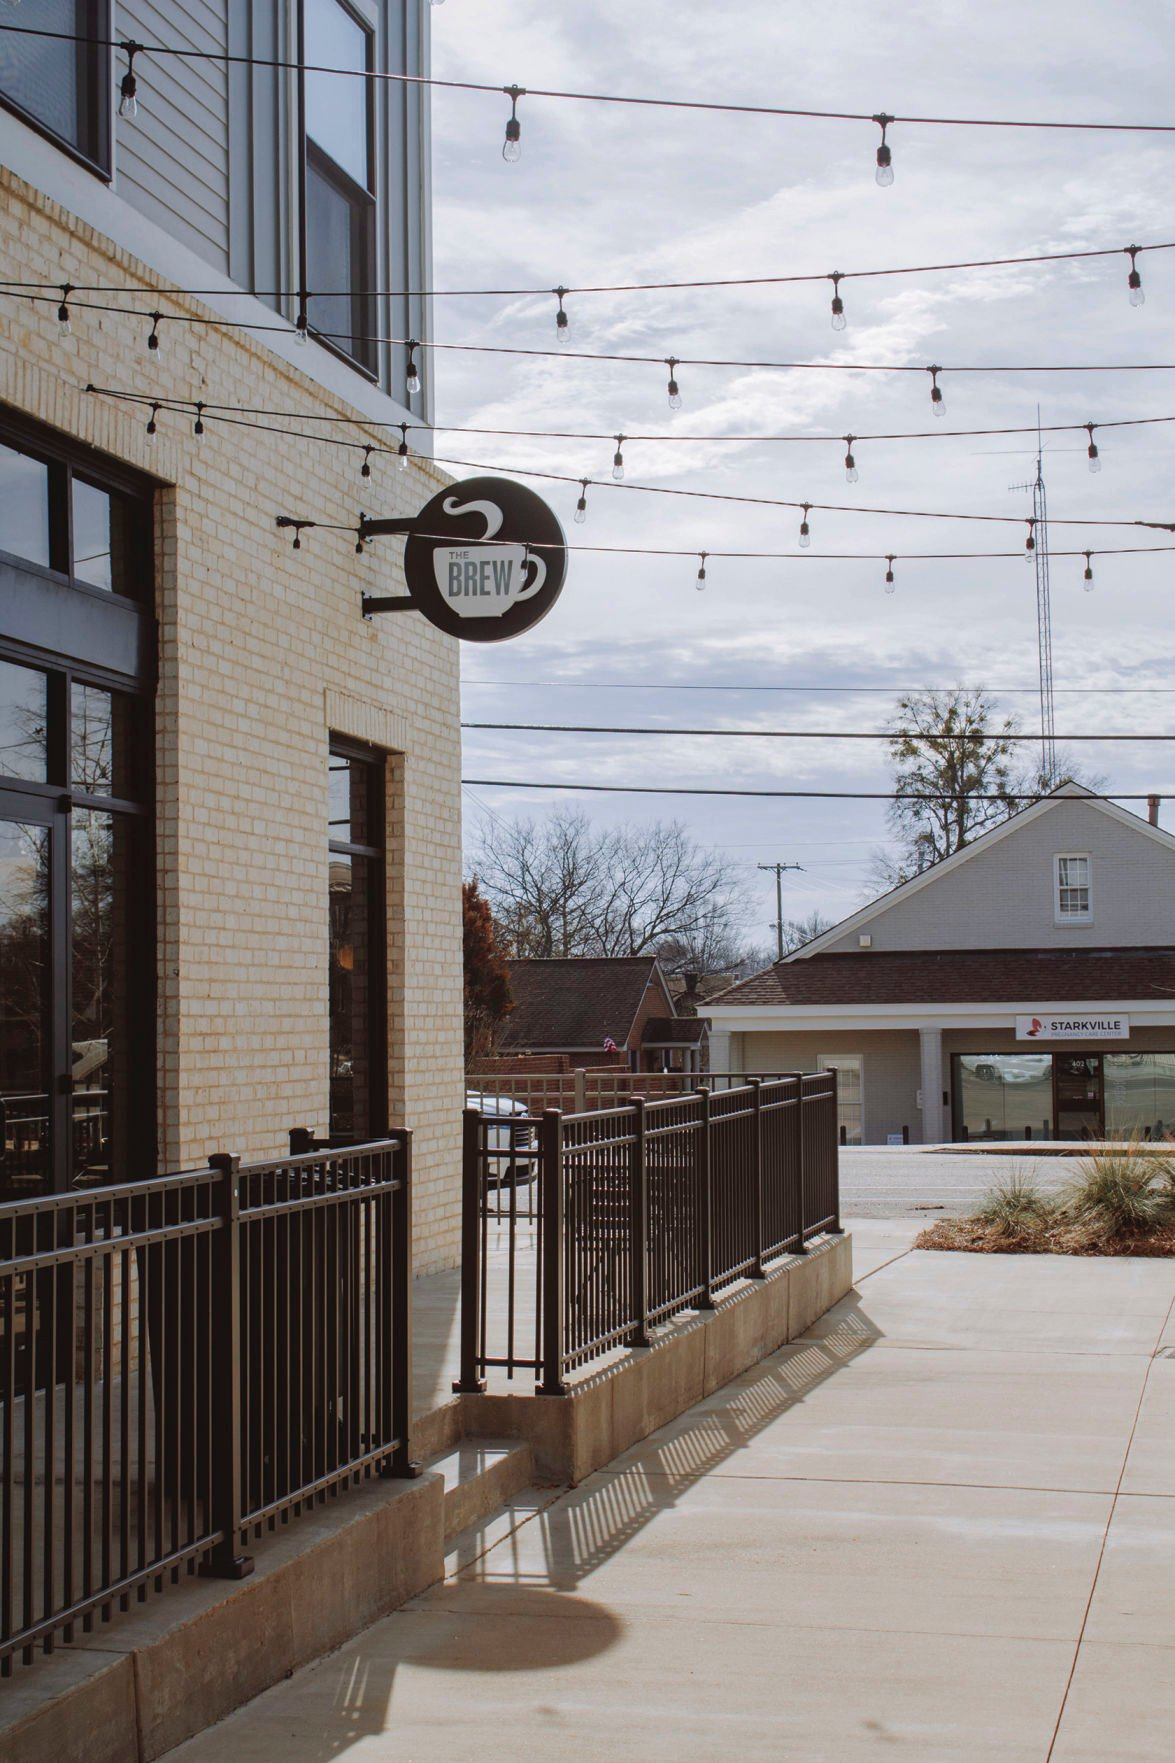 Popular coffeehouse opens new Midtown location